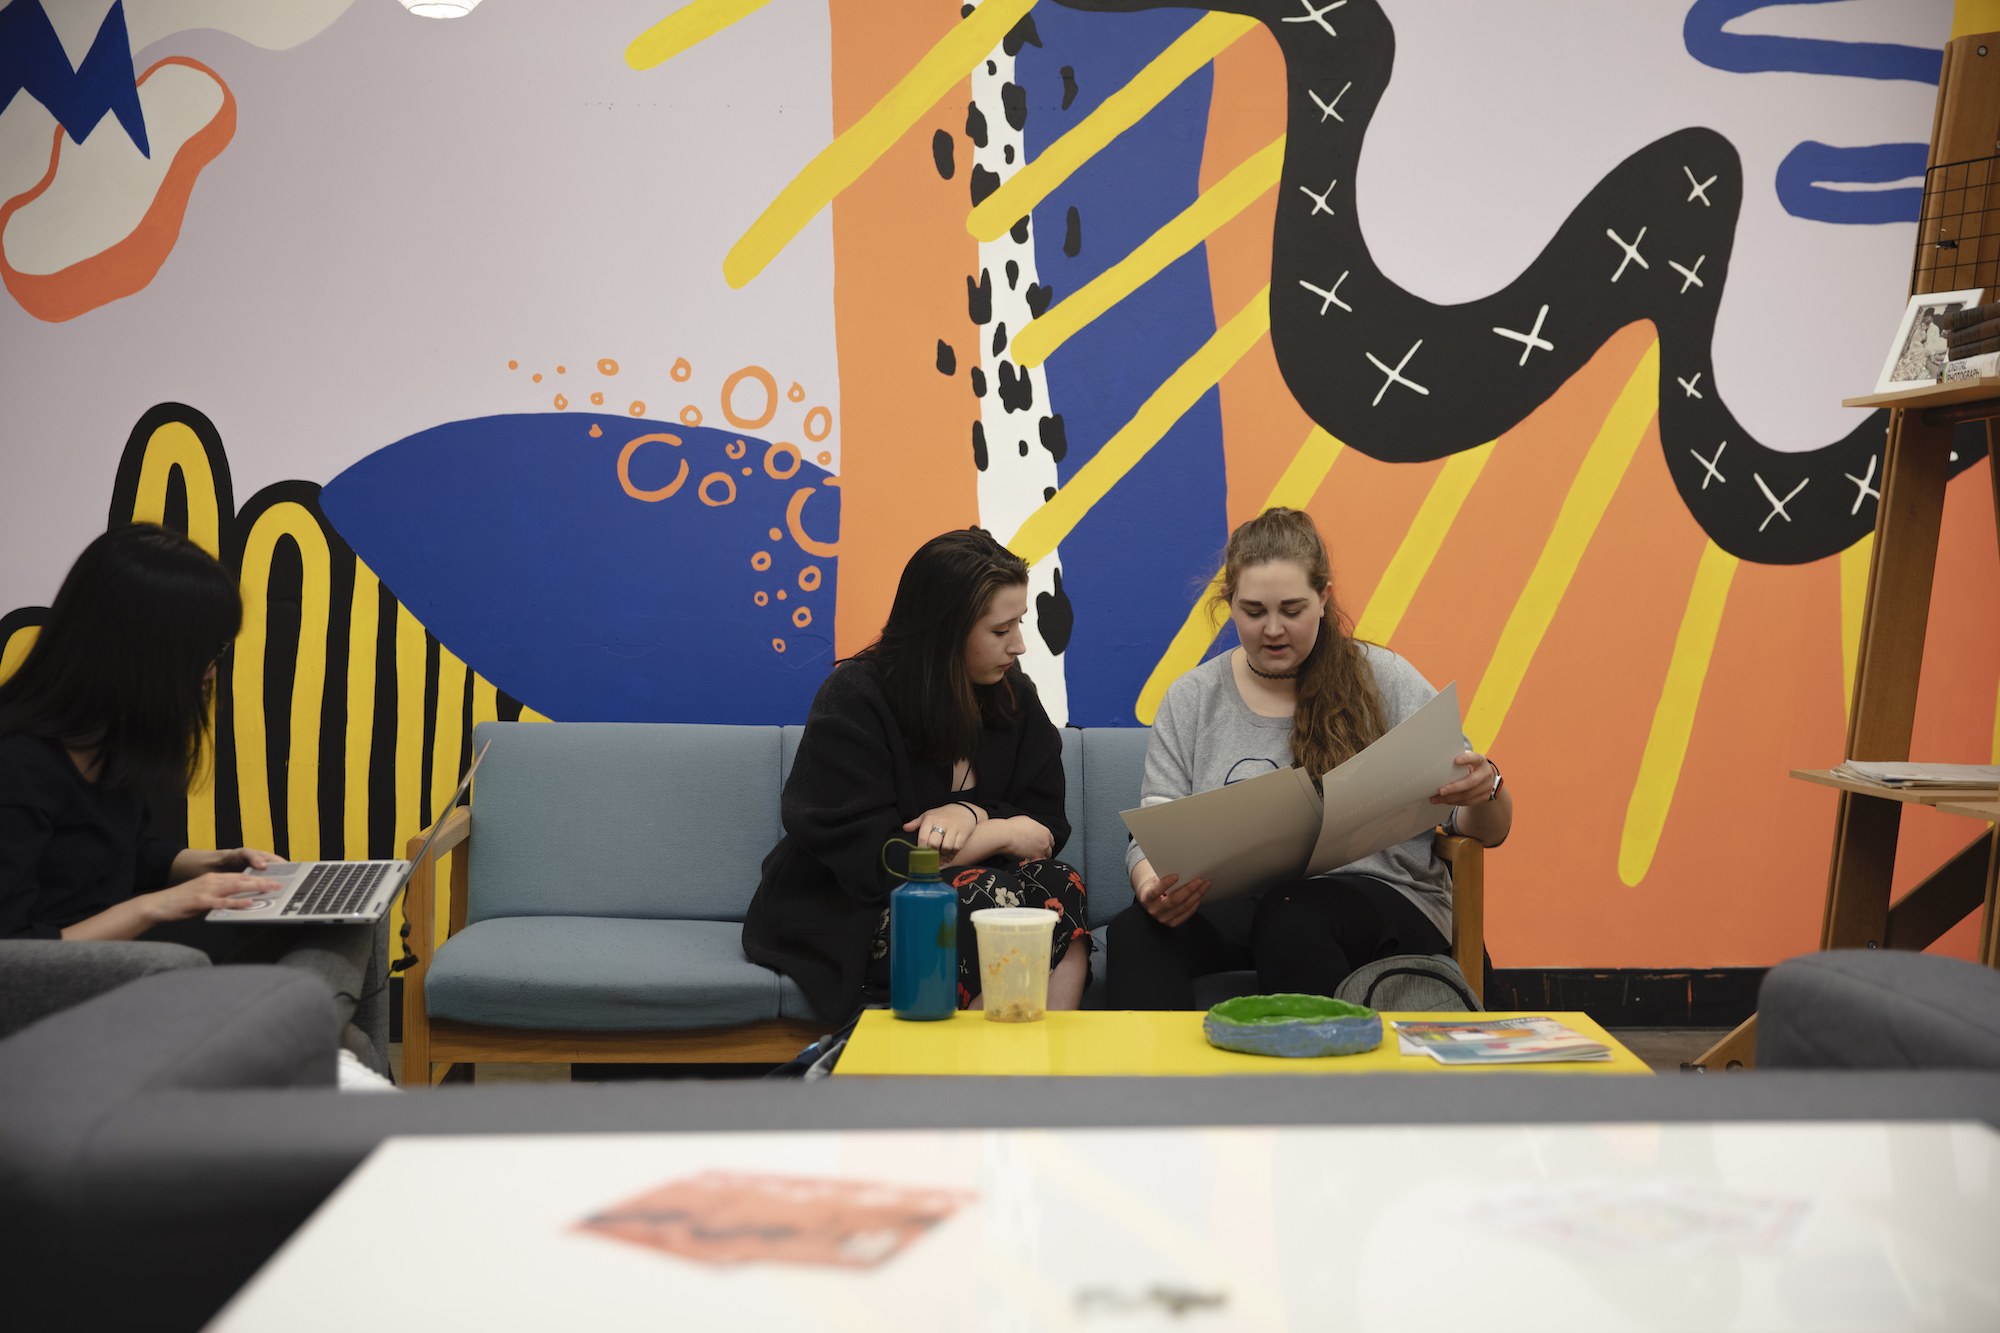 Two women studying on a sofa in front of a colorful mural.